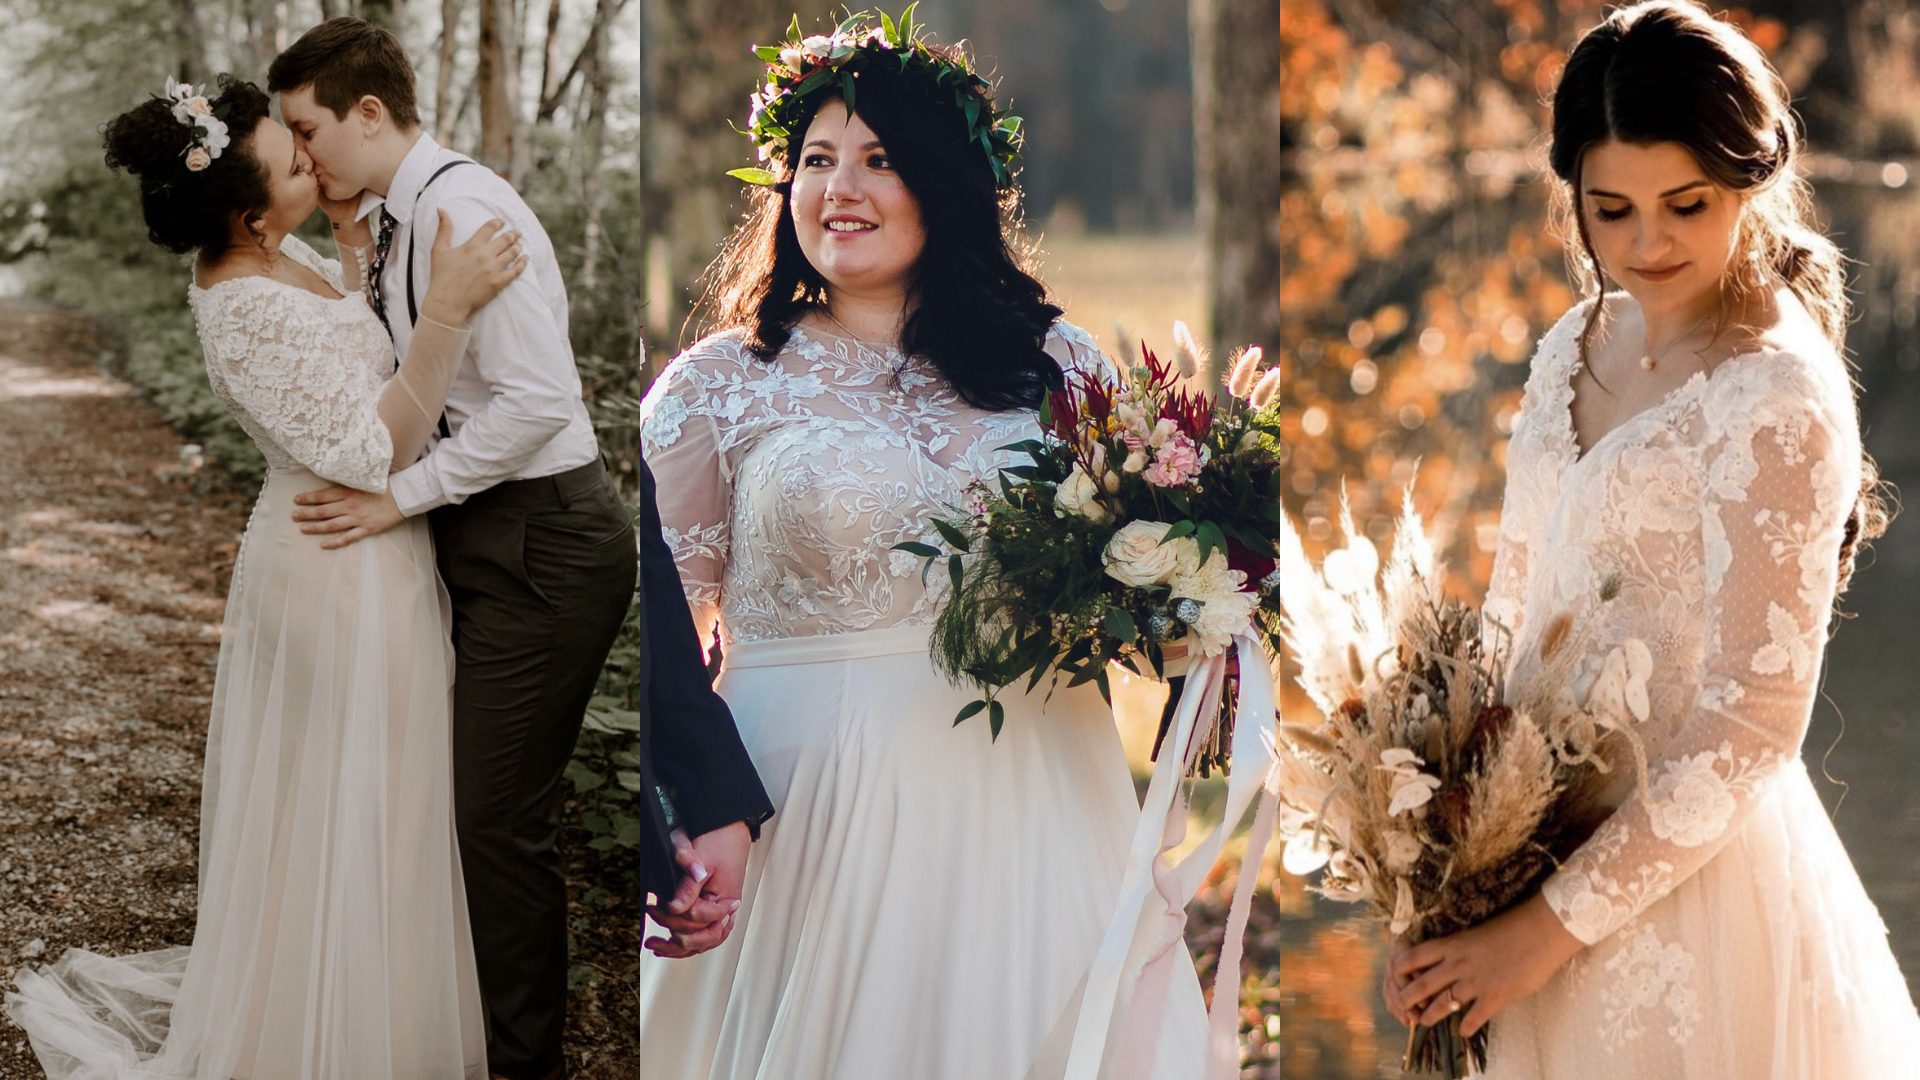 Samantha is showing off her lace wedding dress in her forest wedding; Samantha is a plus size bride who is wearing a gorgeous wedding dress with sleeves; Nicole is outside in her sweetheart neckline bohemian wedding dress.